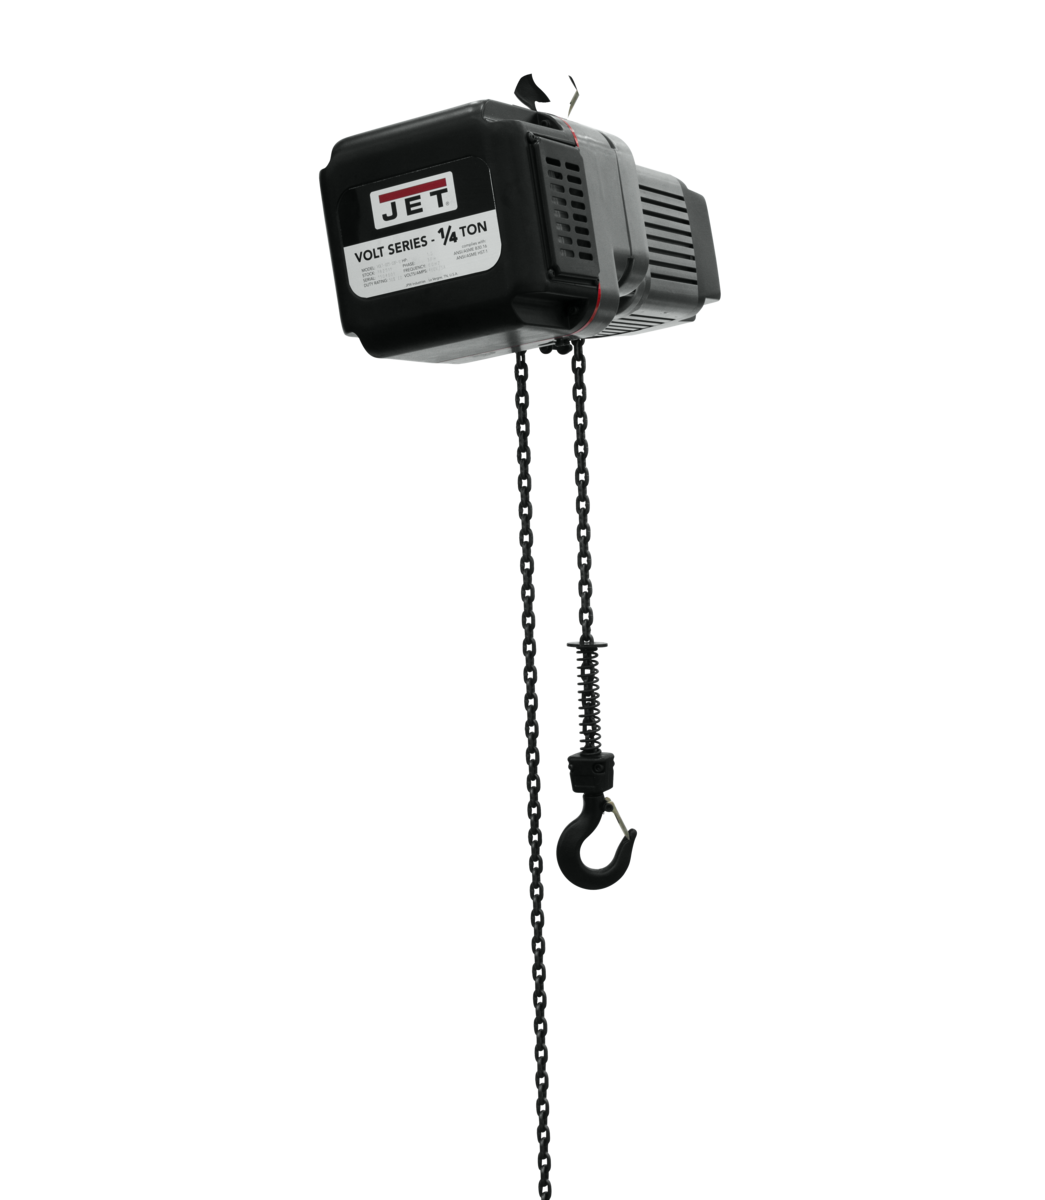 VOLT 1/4TVARIABLE-SPEED ELECTRIC HOIST 3PH 460V 15' LIFT